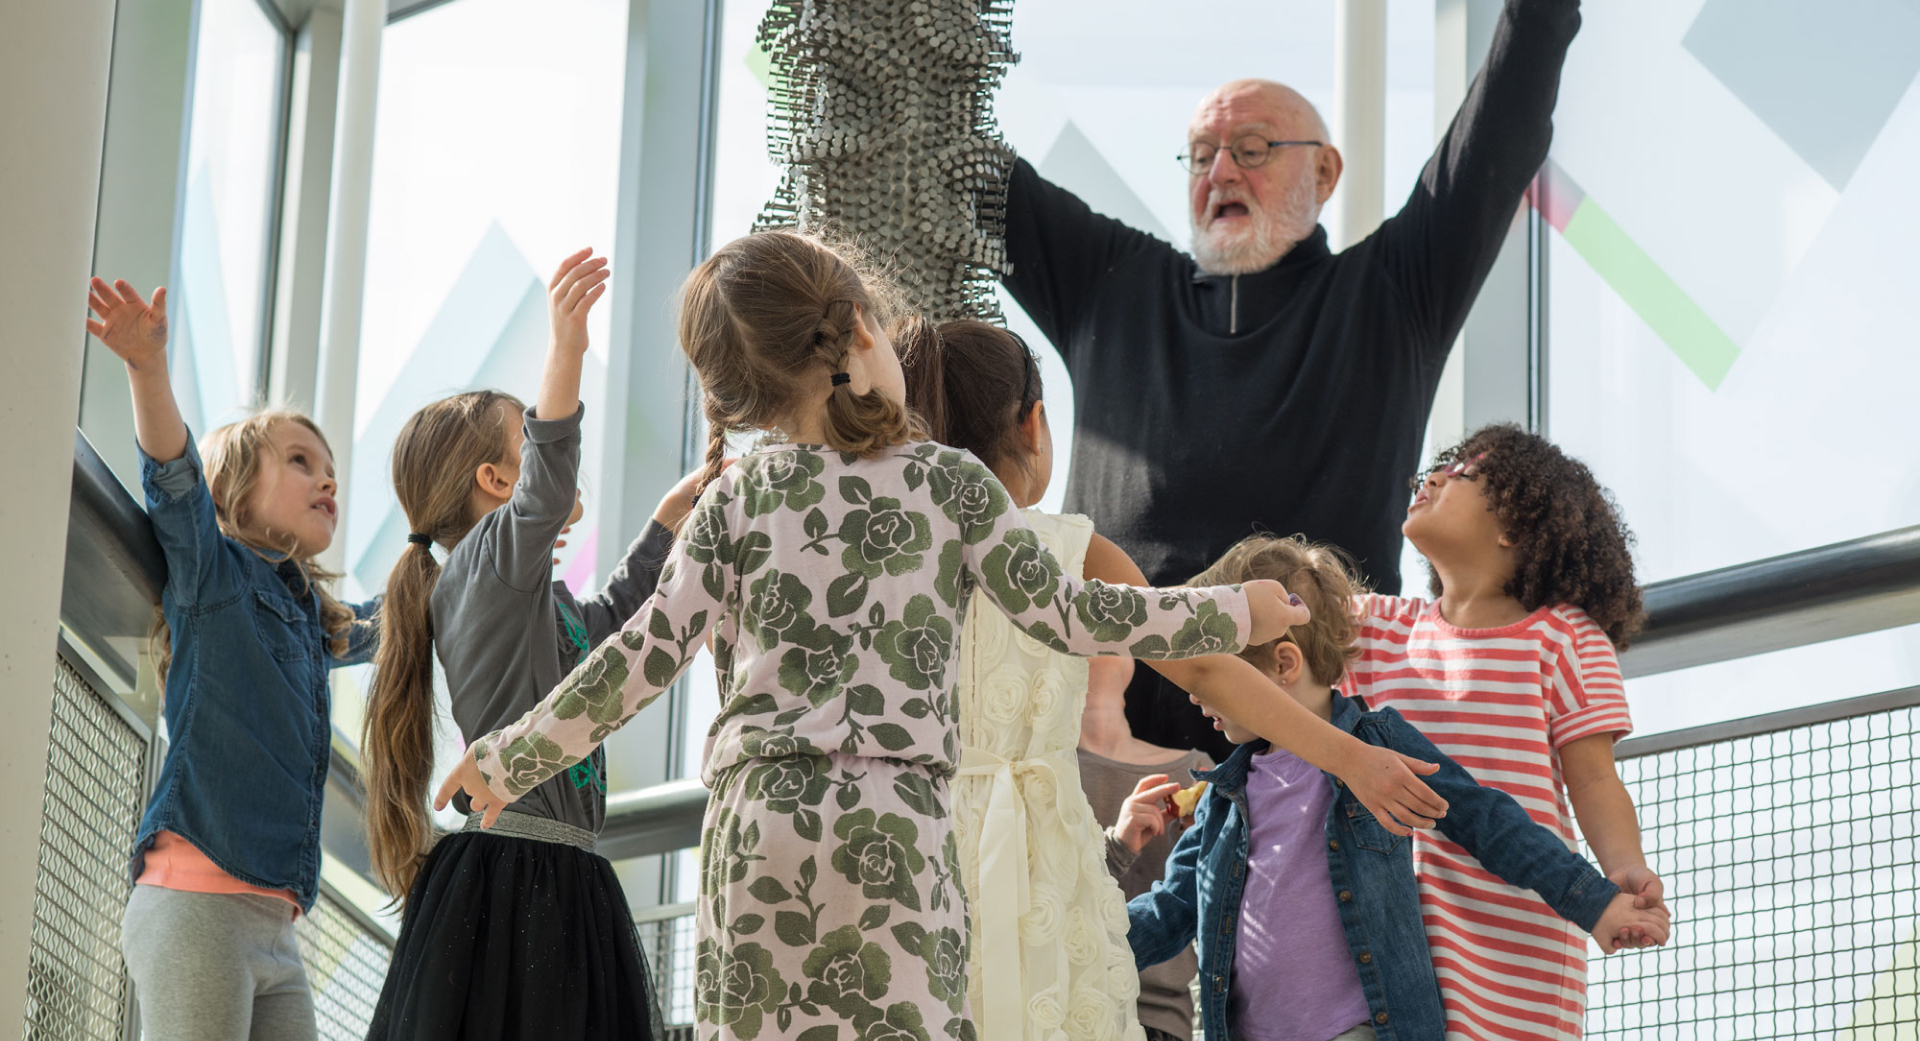 older man with a beard & glasses surrounded by children all raising their arms next to a sculpture